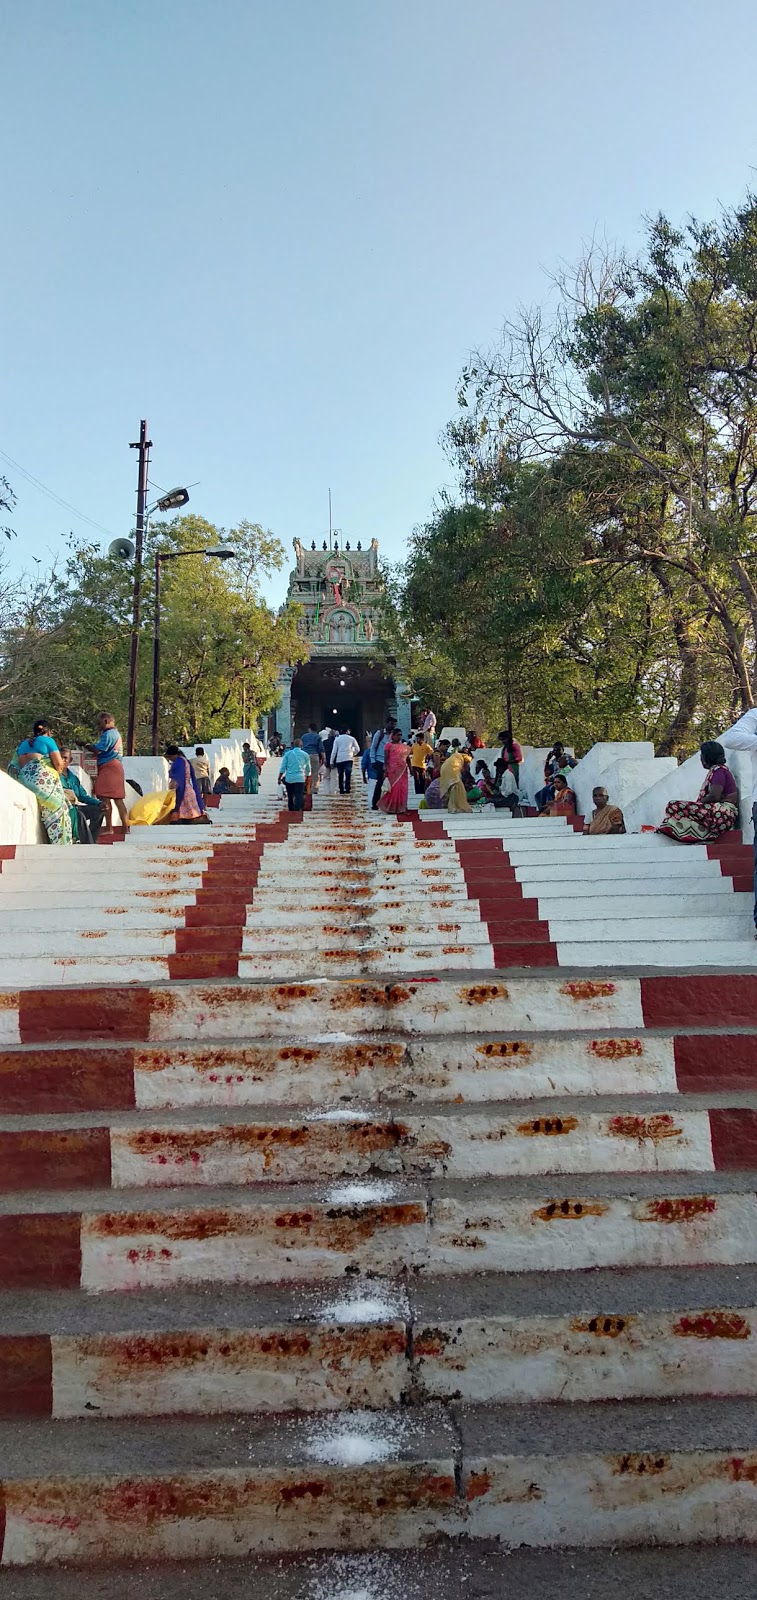 Only Temple in Tamil Nadu Lord Murugan Facing North Direction in Kundrathur